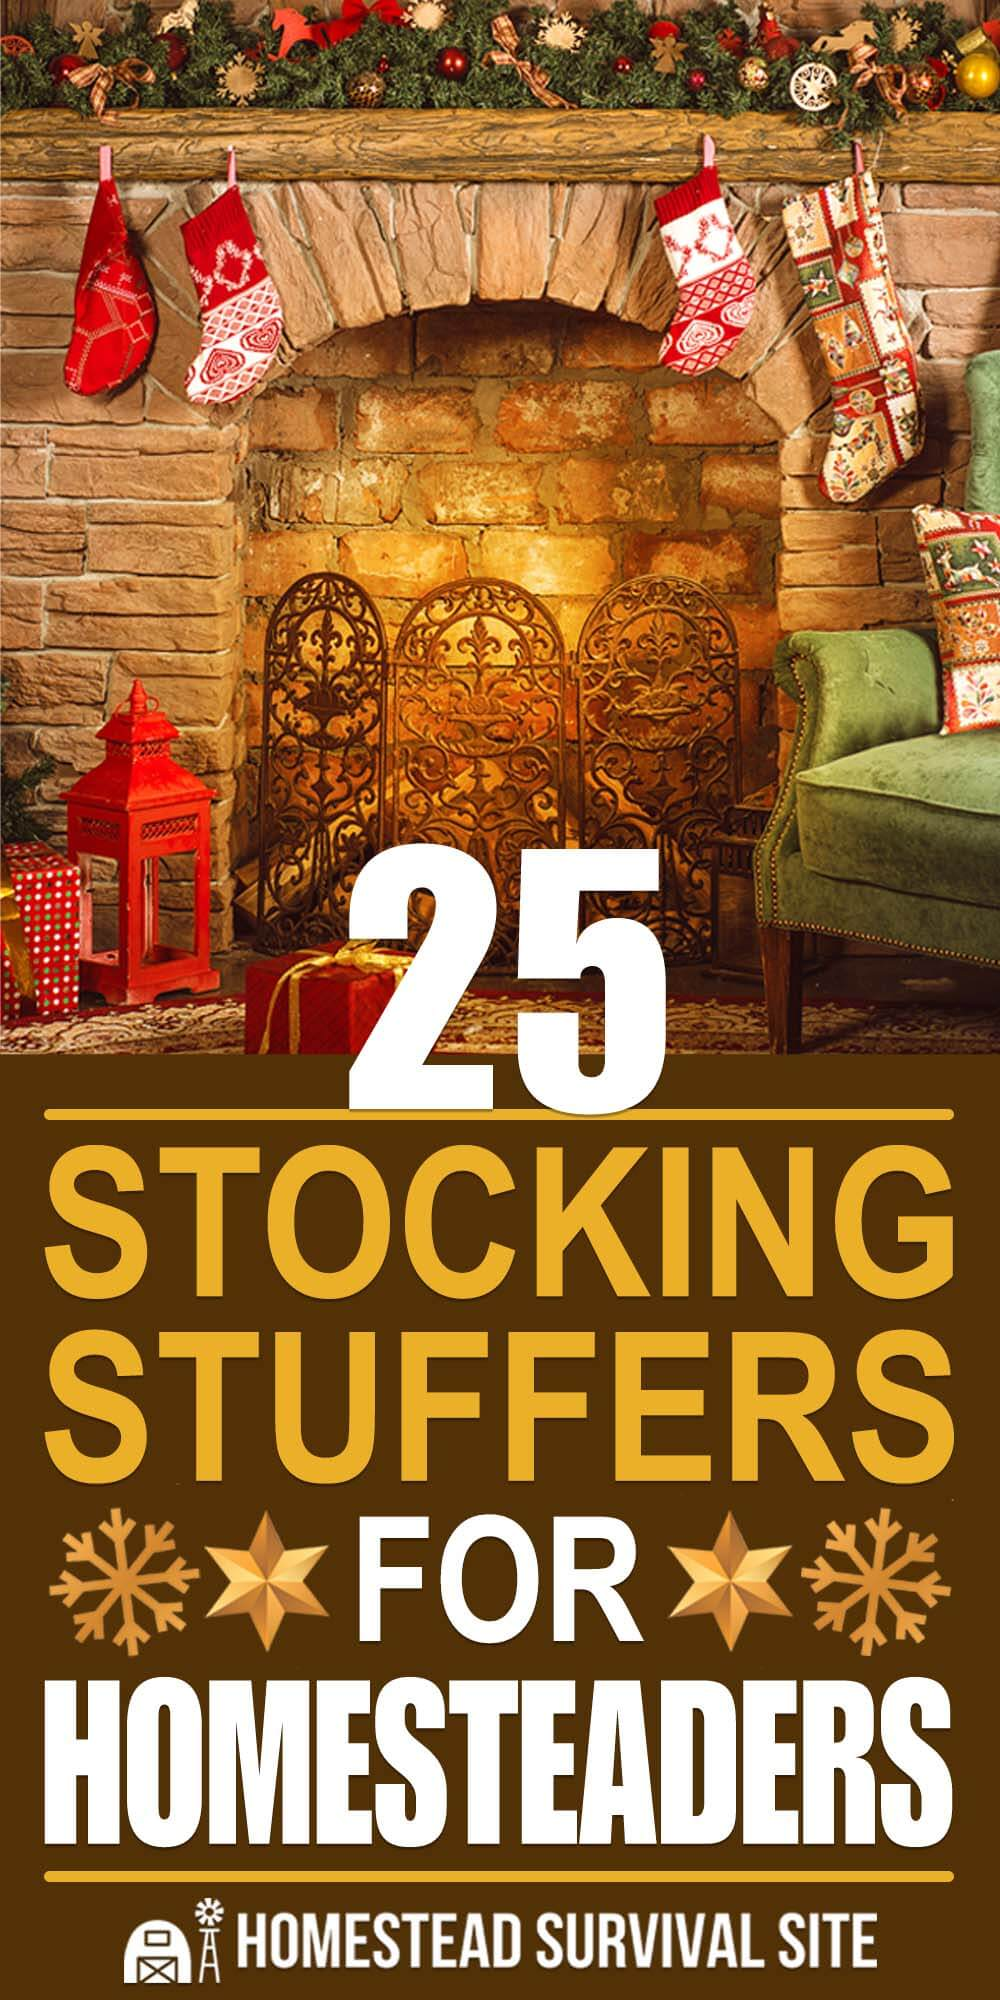 25 Stocking Stuffers for Homesteaders